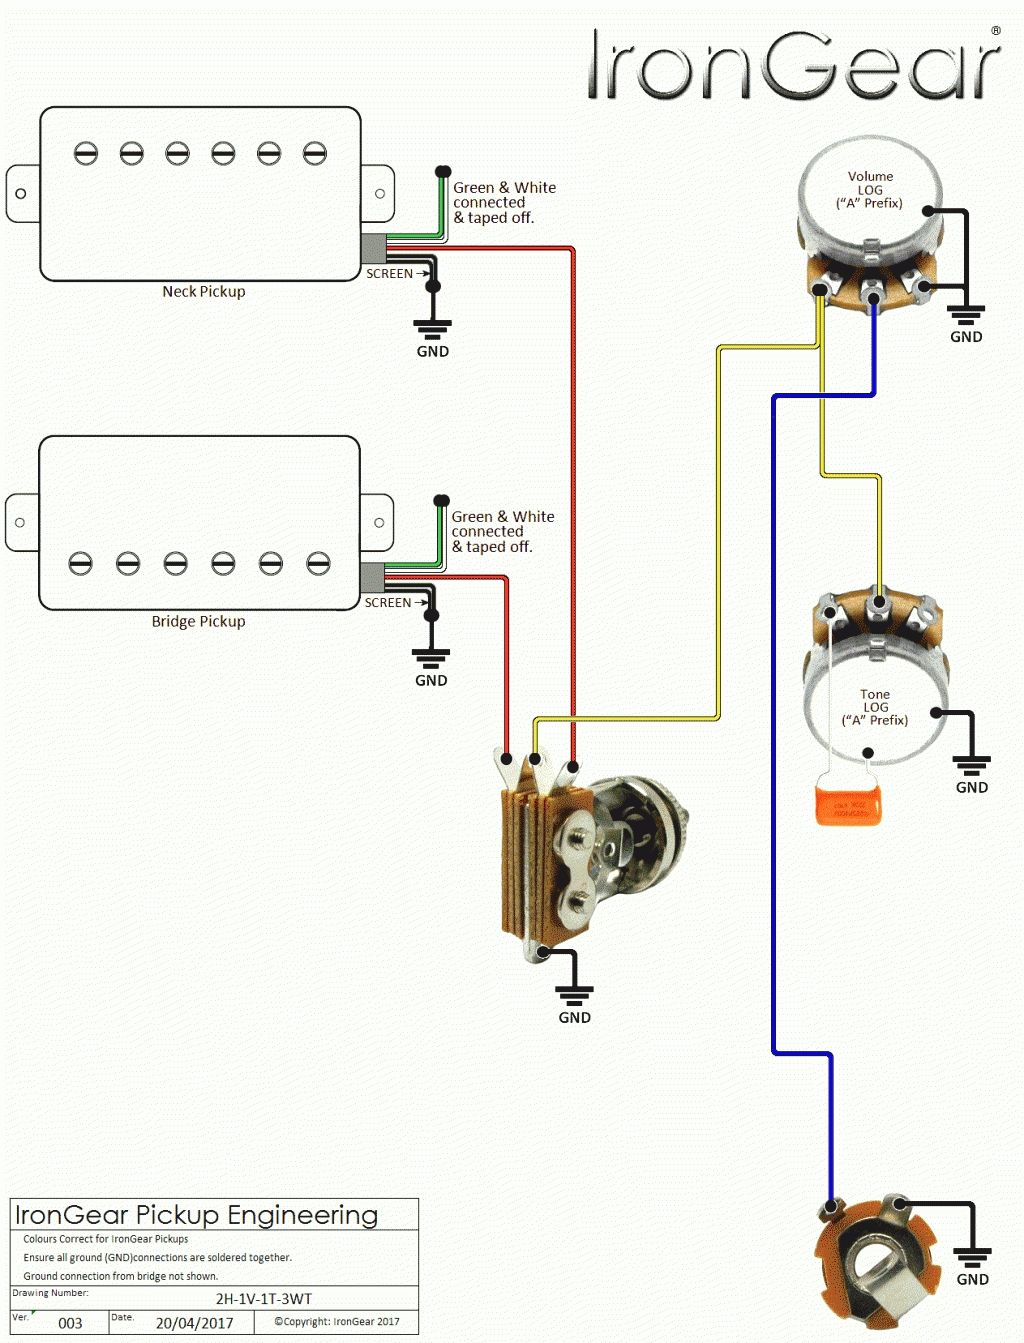 electric guitar pickup wiring diagram visual studio 2013 generate class for bass p within